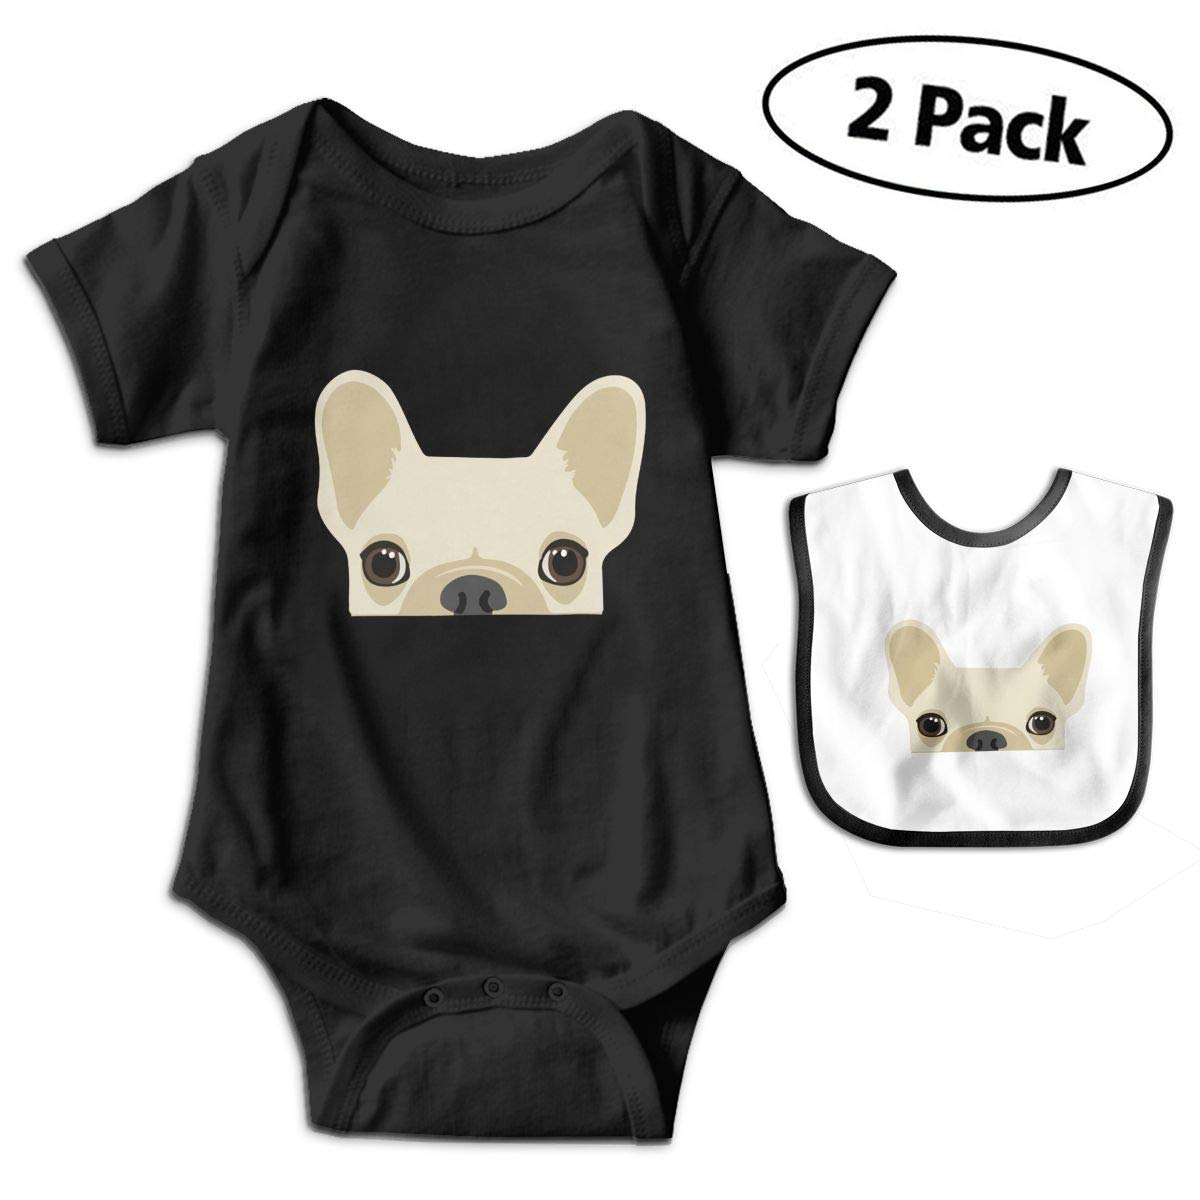 Mostico Nachill Funny French Bulldog Print Baby Boys Girls 100/% Cotton Short Sleeve Romper